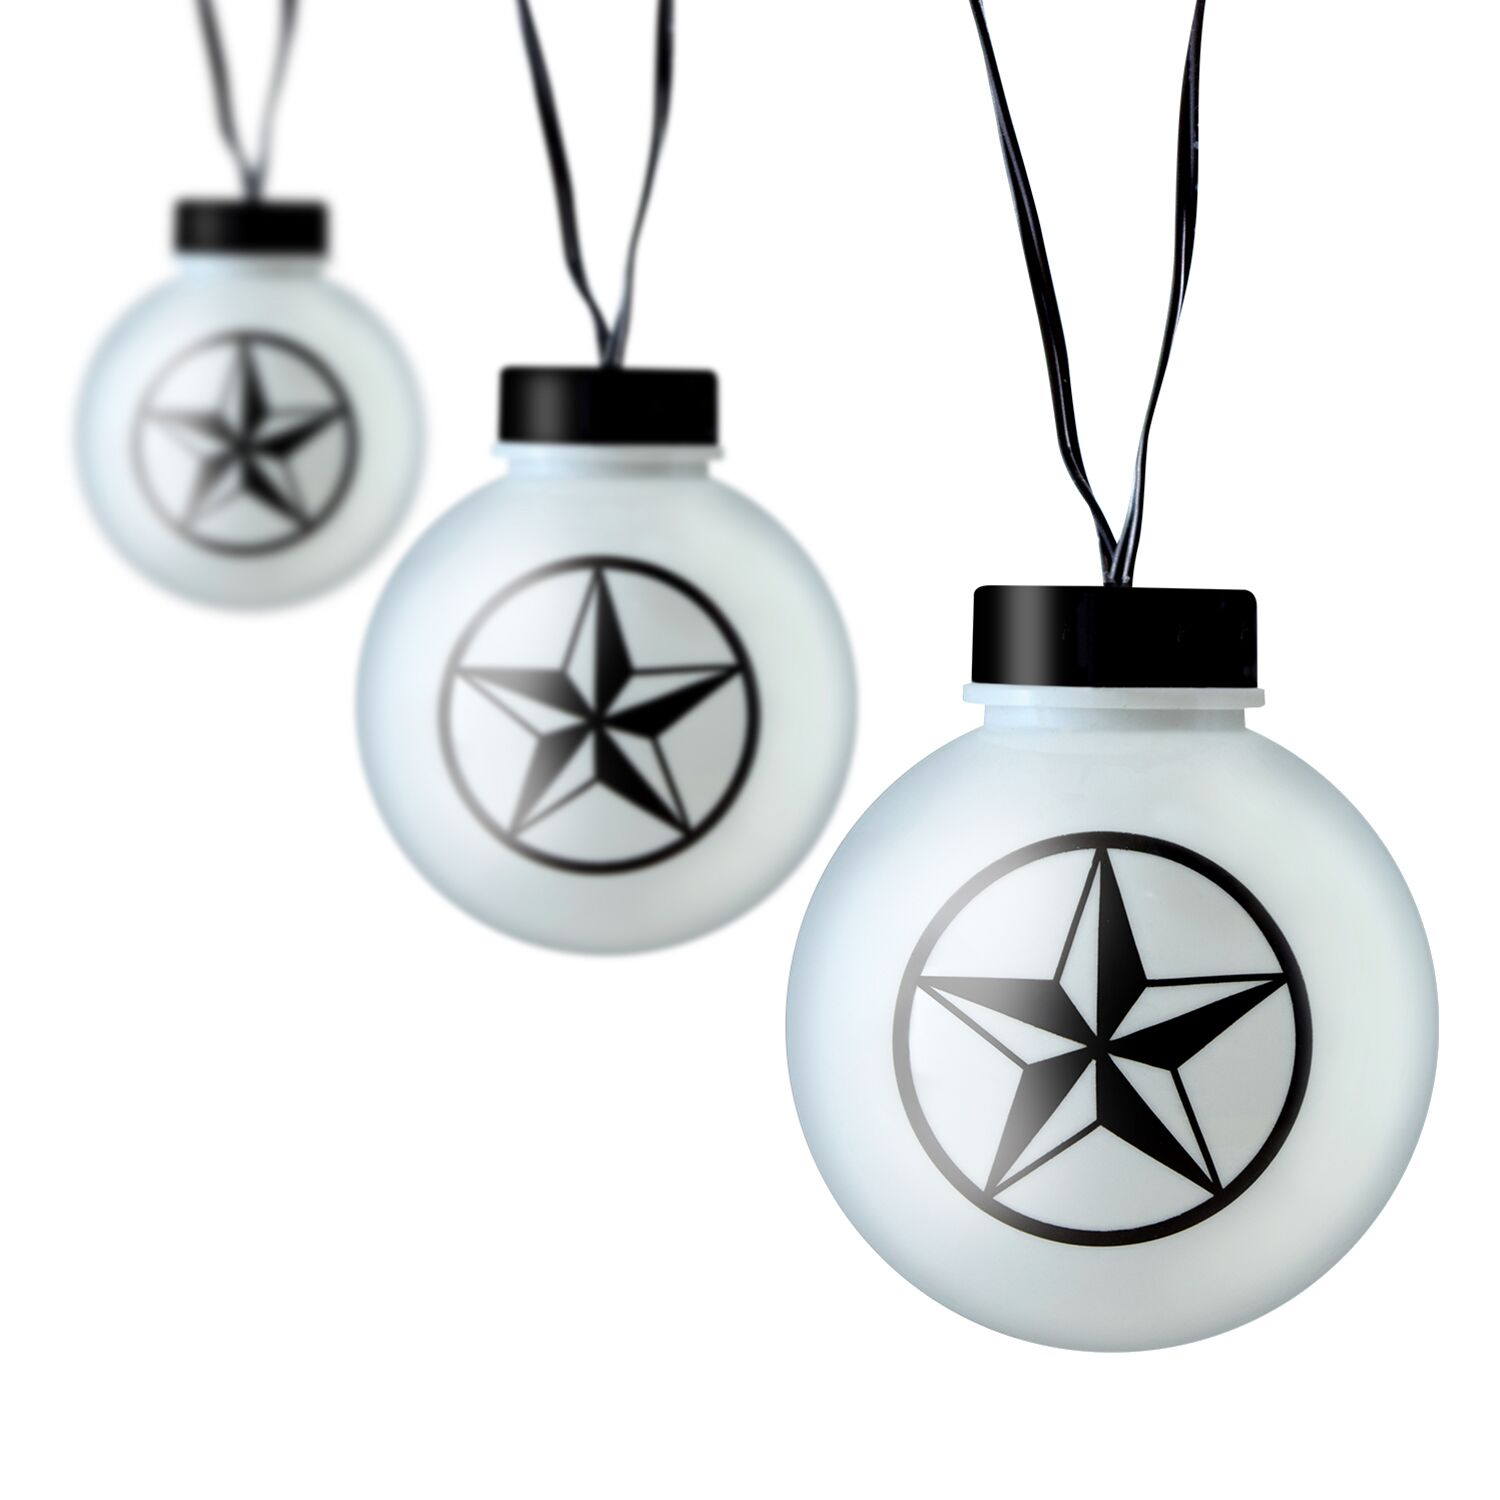 Meilo 12ft Texas Star String Lights - 6 Large Globes (3'' Diameter) G25 Warm White LED Lights for RV, Patio, Courtyards, Weddings, Christmas Décor, Indoor/Outdoor